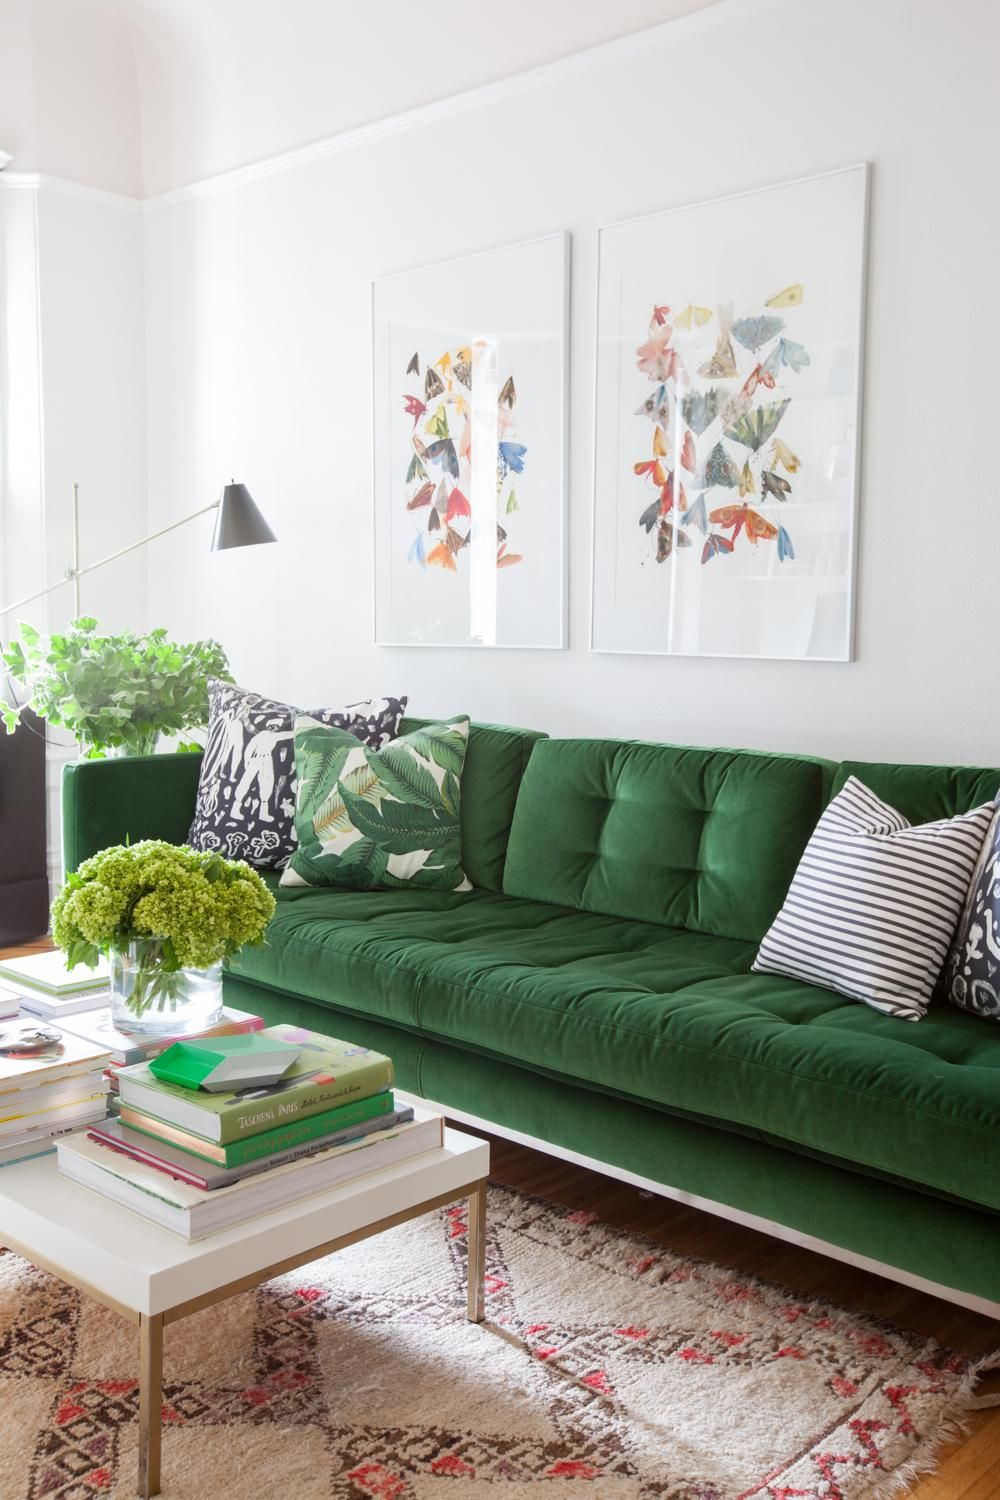 Kelly Green Velvet Tufted Sofa | 6 Velvet Home Decor Ideas To Copy Now |  StyleCaster